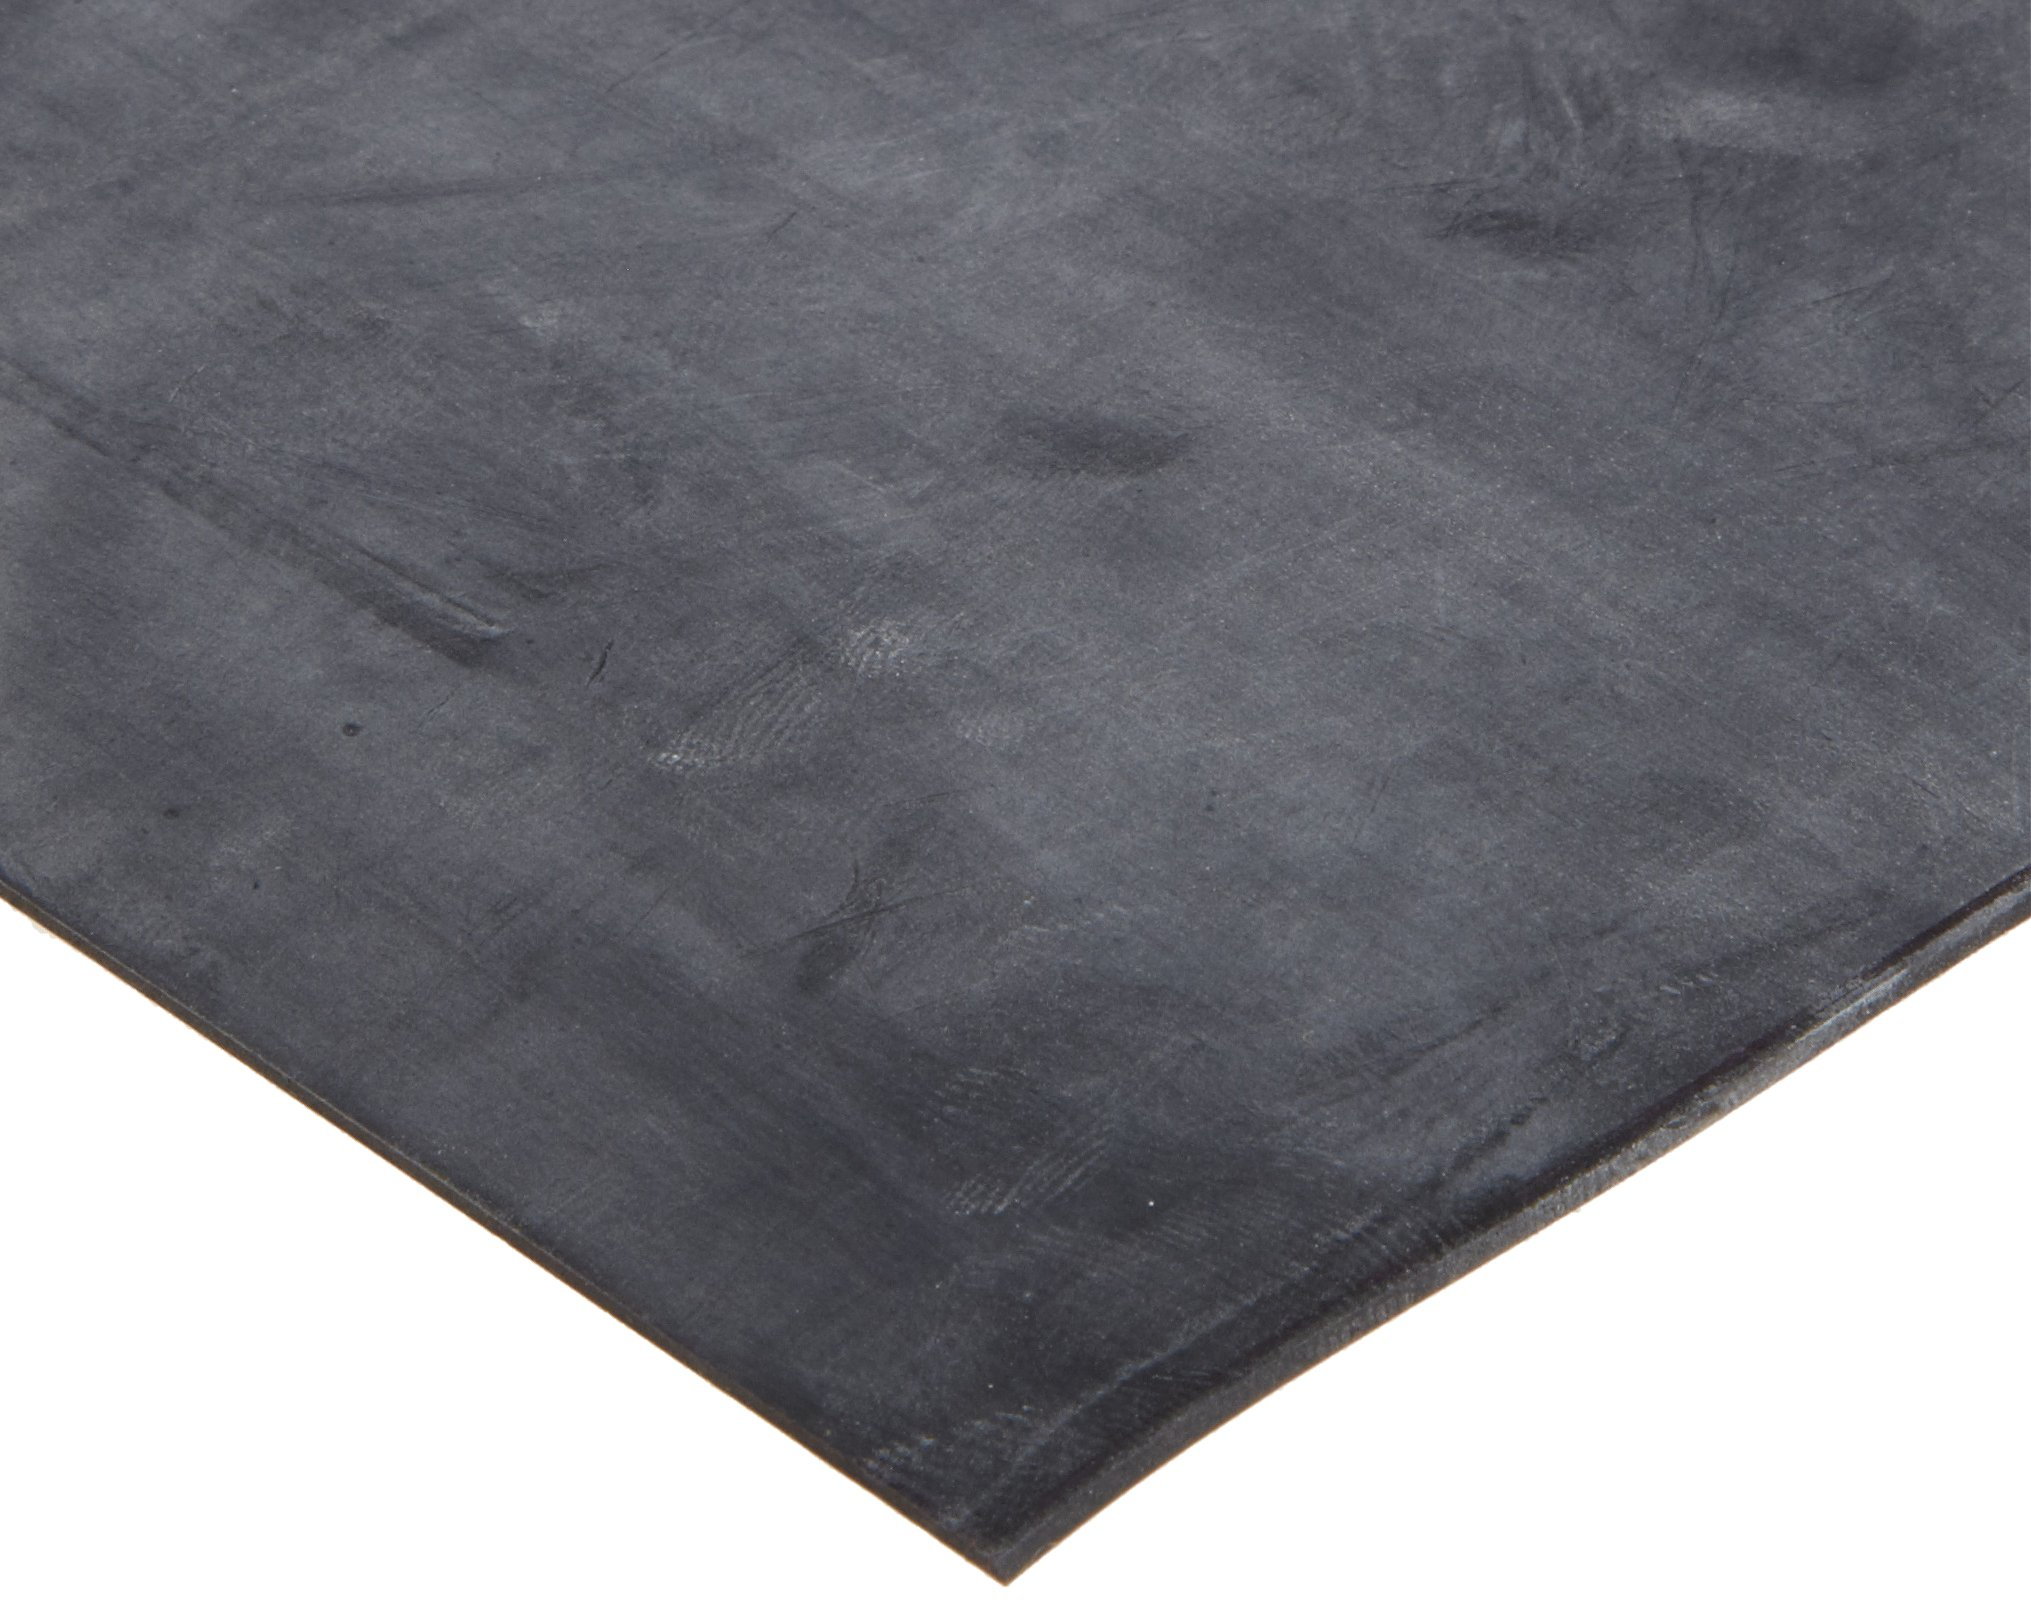 Neoprene Sheet Gasket, Black, 1/8'' Thick, 12'' × 12'' (Pack of 1) by Small Parts